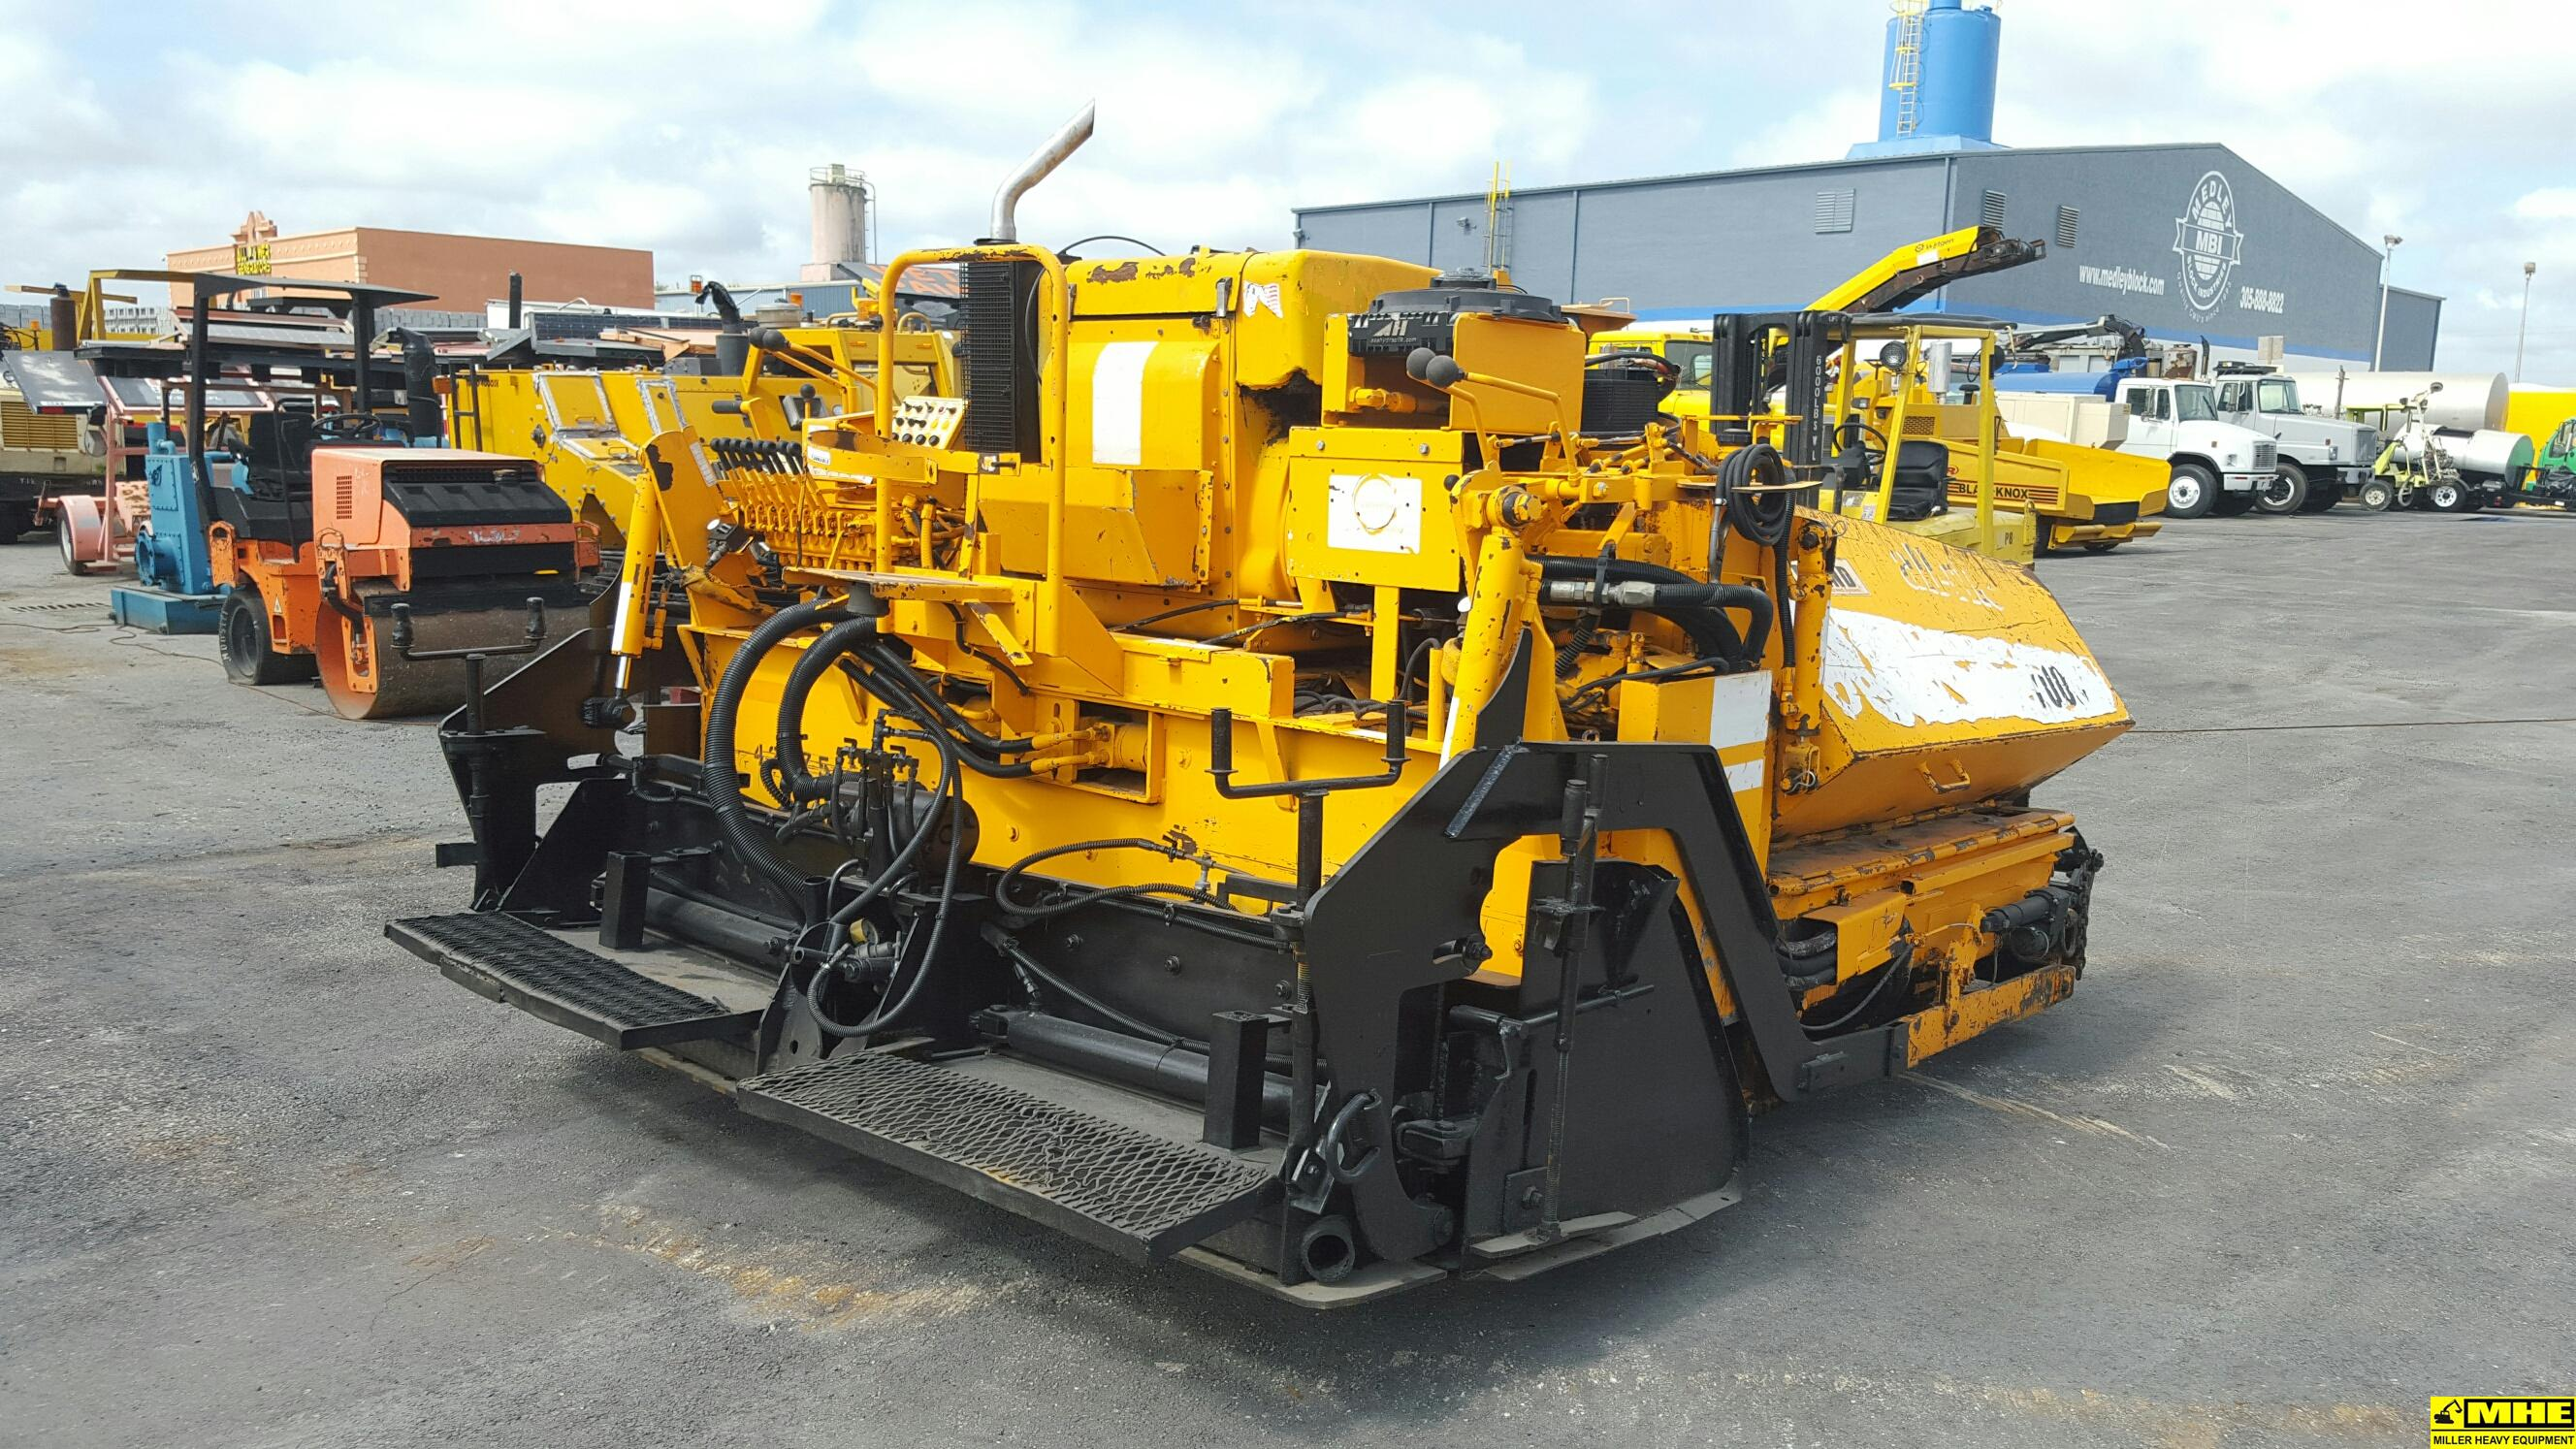 Bulldozers For Sale >> 2008 Leeboy L7000LD paver – Used Heavy Equipment For Sale Asphalt Paving Road Construction ...